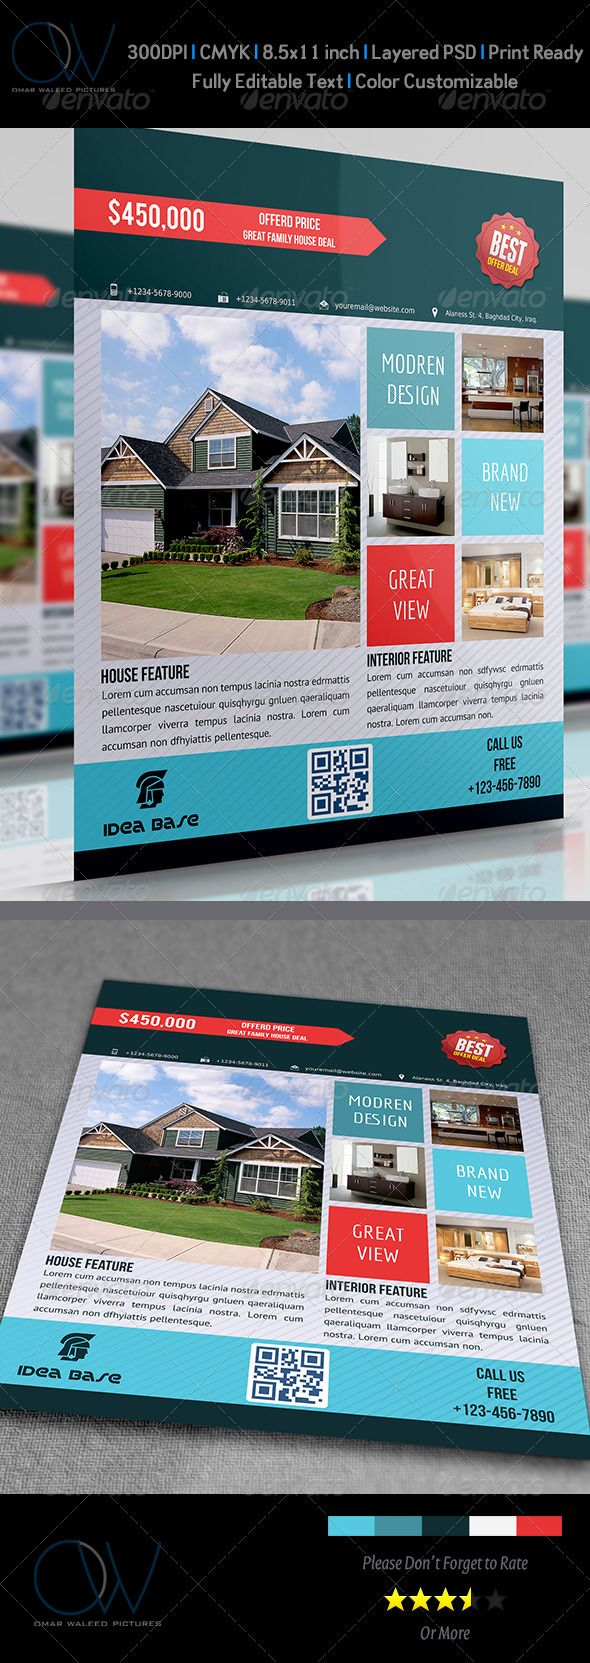 best images about real estate flyers real estate 17 best images about real estate flyers real estate companies real estate business and open house